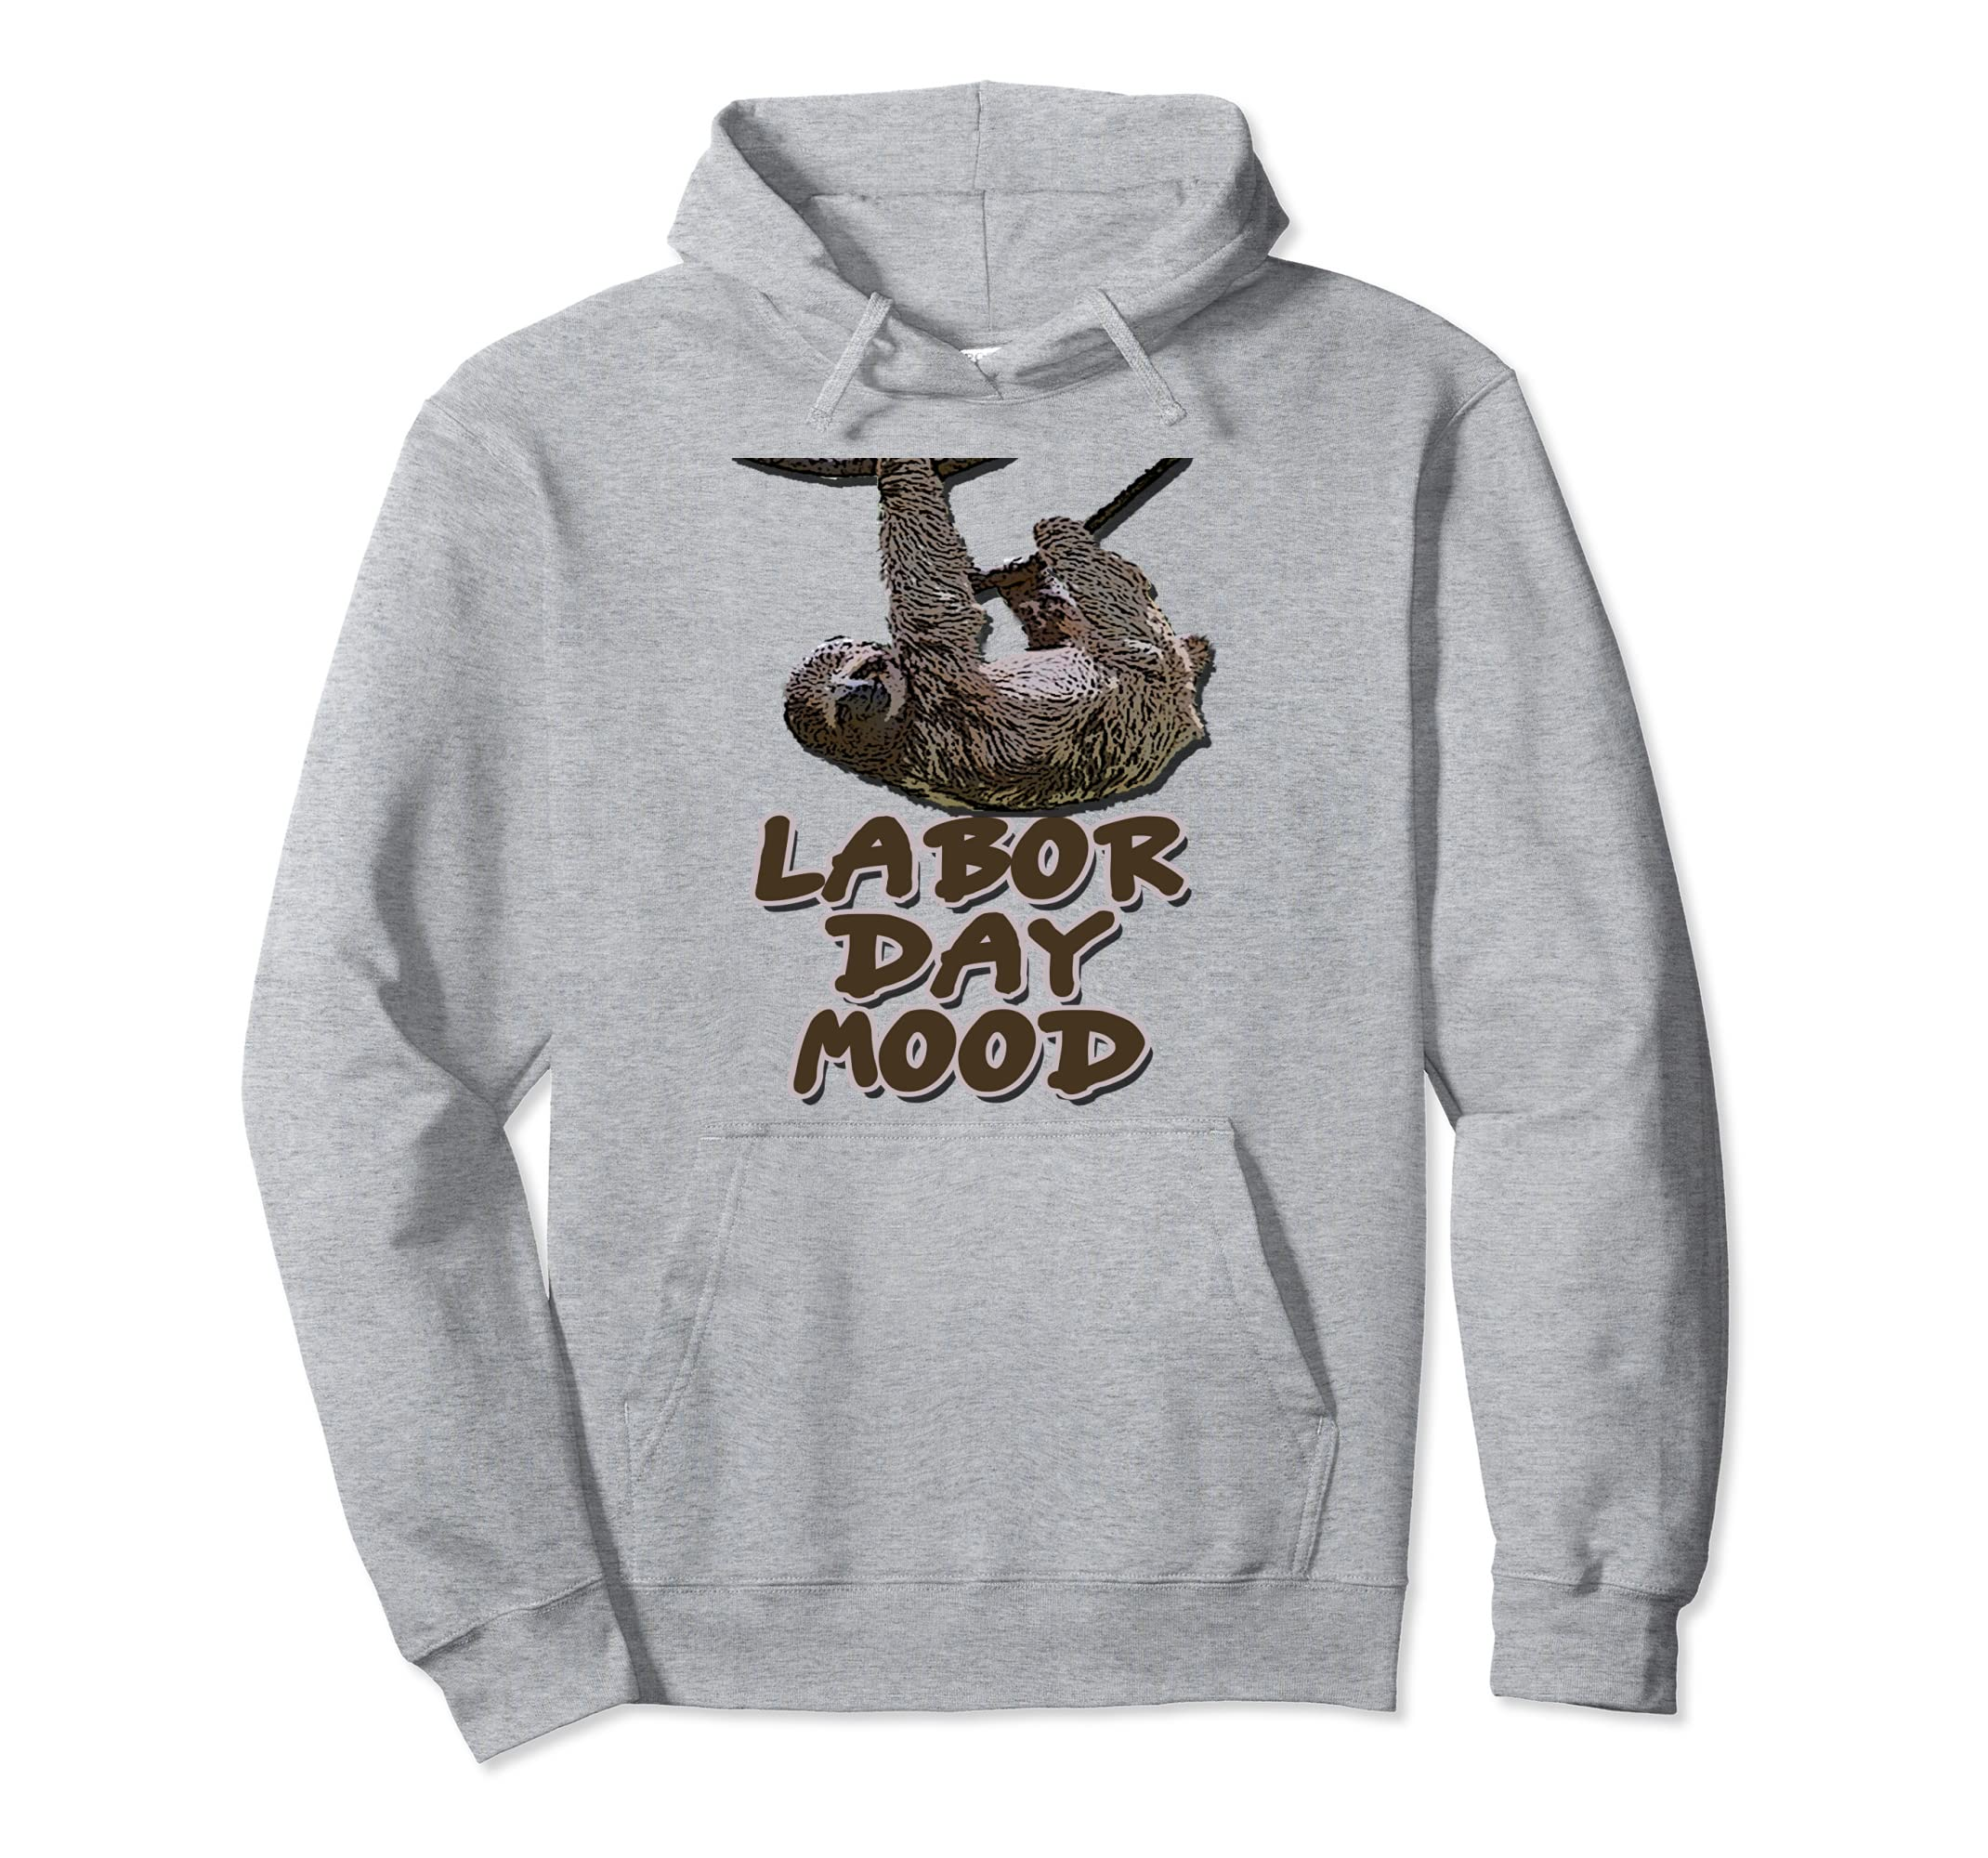 Funny Labor Day Hoodie Labor Day Mood With A Smiling Sloth-anz